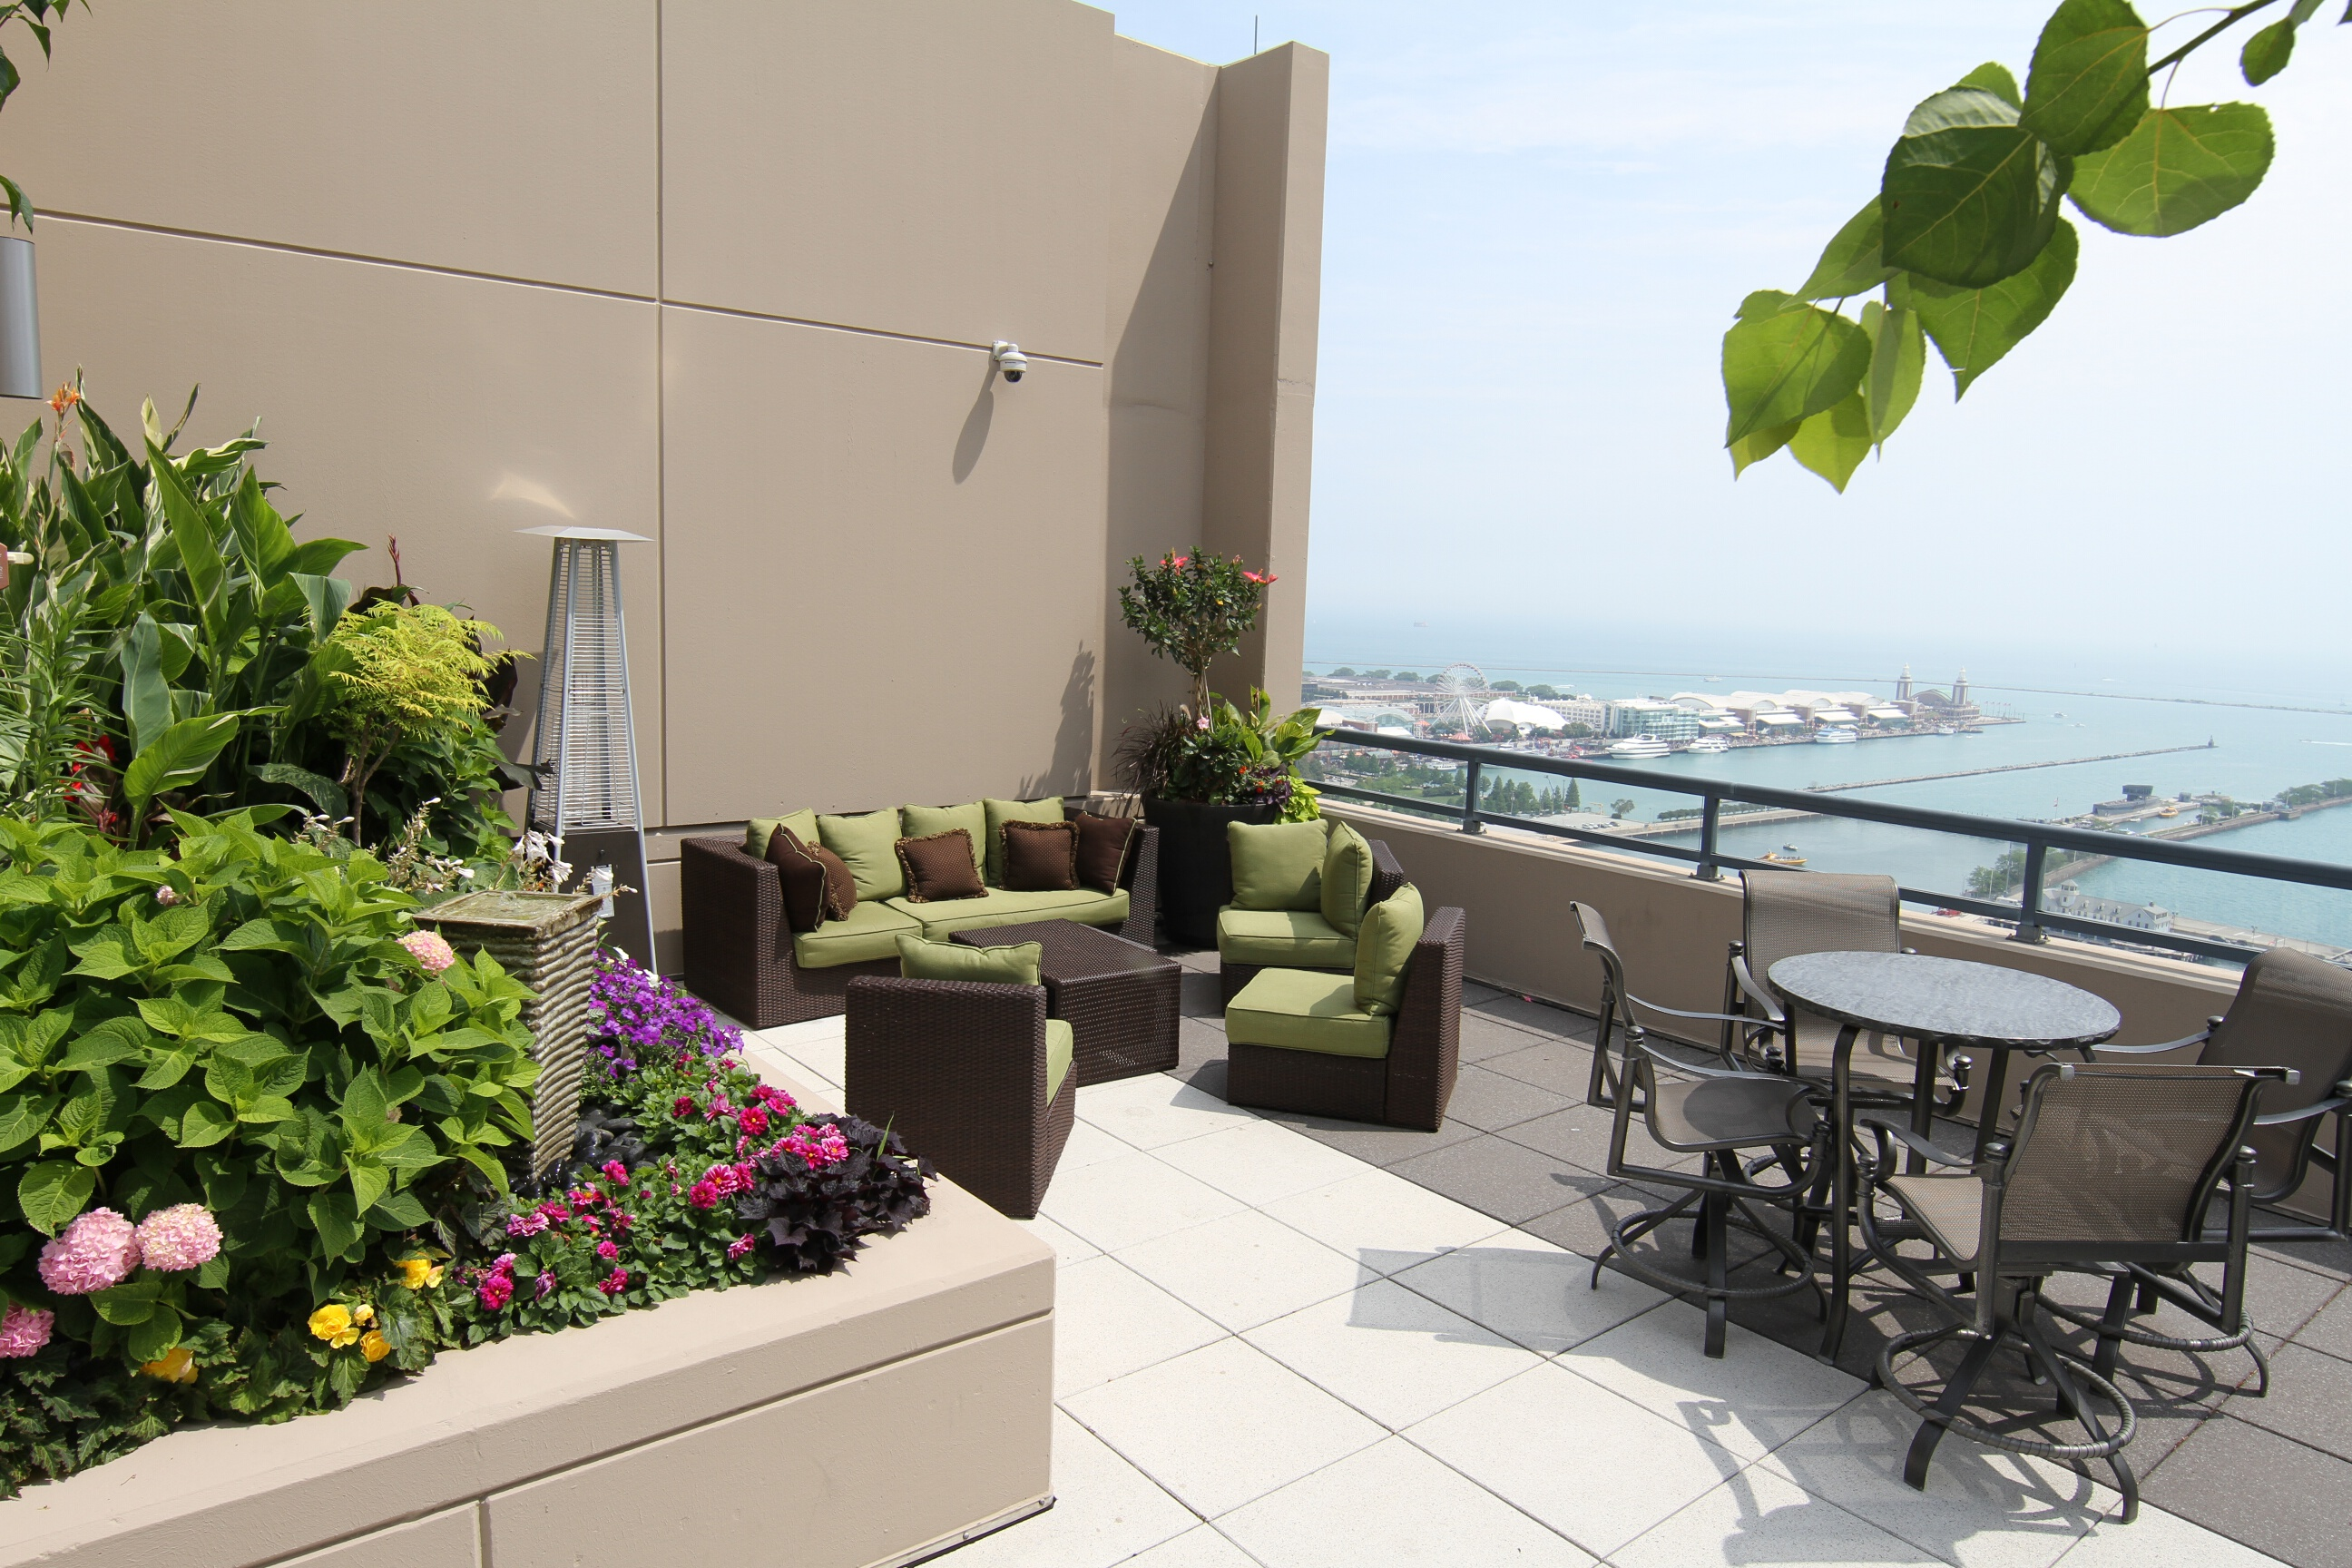 Northeast rooftop lounge area